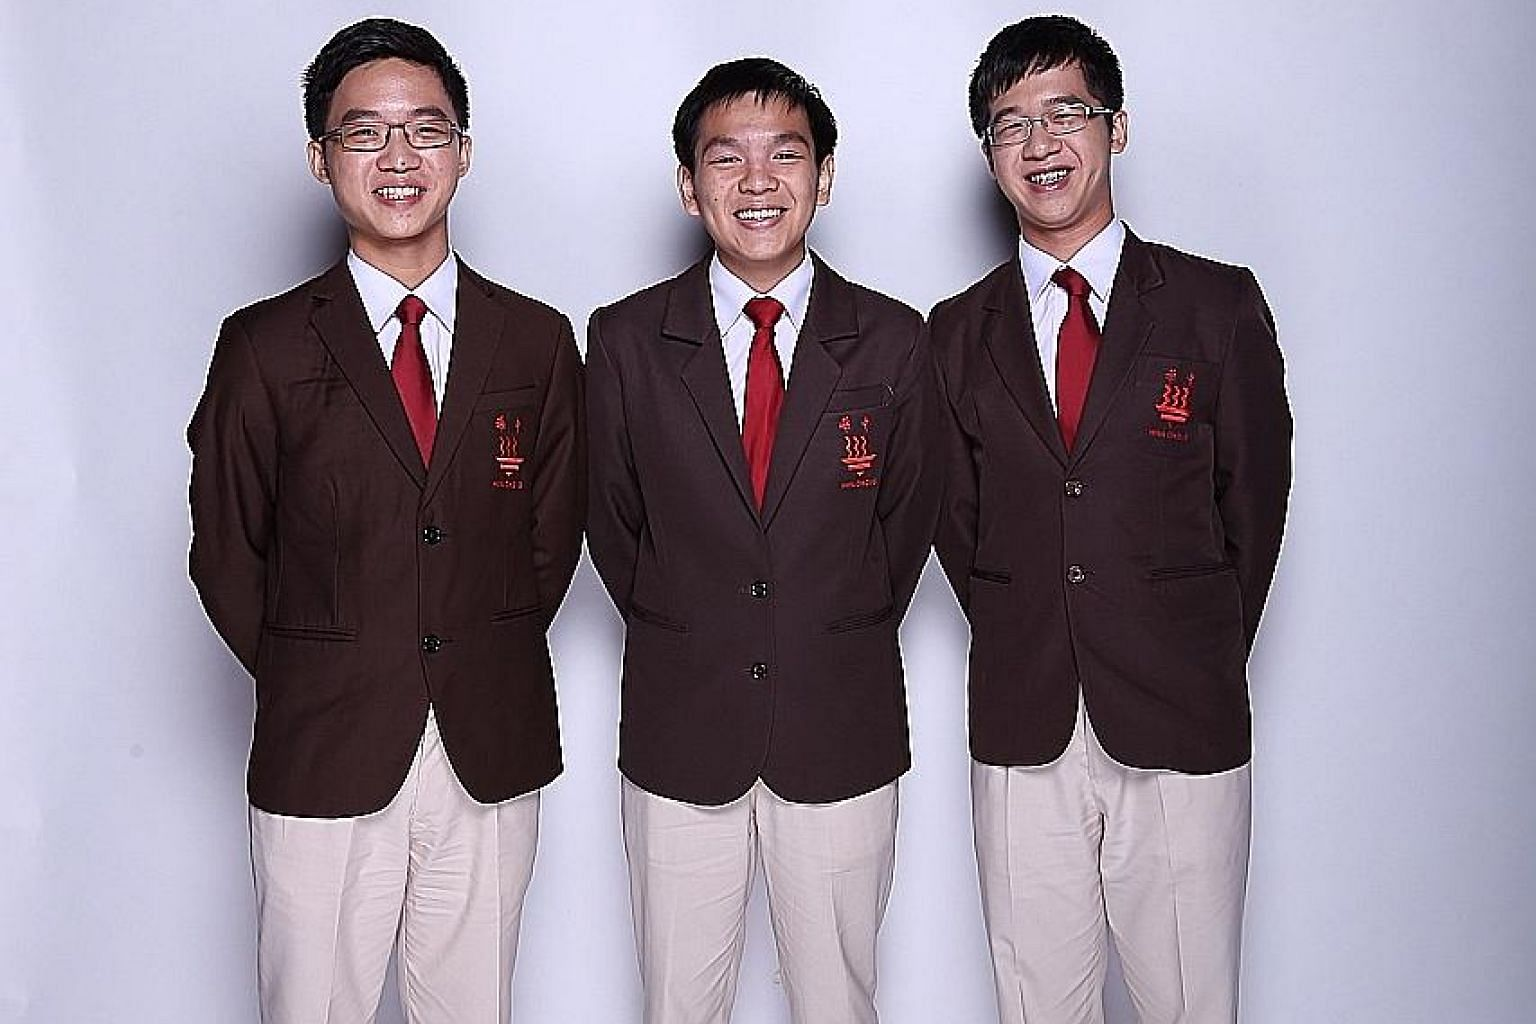 Hwa Chong Institution student Dominic Yap, flanked by his teammates Bryan Lim (left) and Shawn Lim, was picked as one of eight finalists for the A*Star Talent Search, eventually receiving a Special Commendation. The team picked up a gold award from t